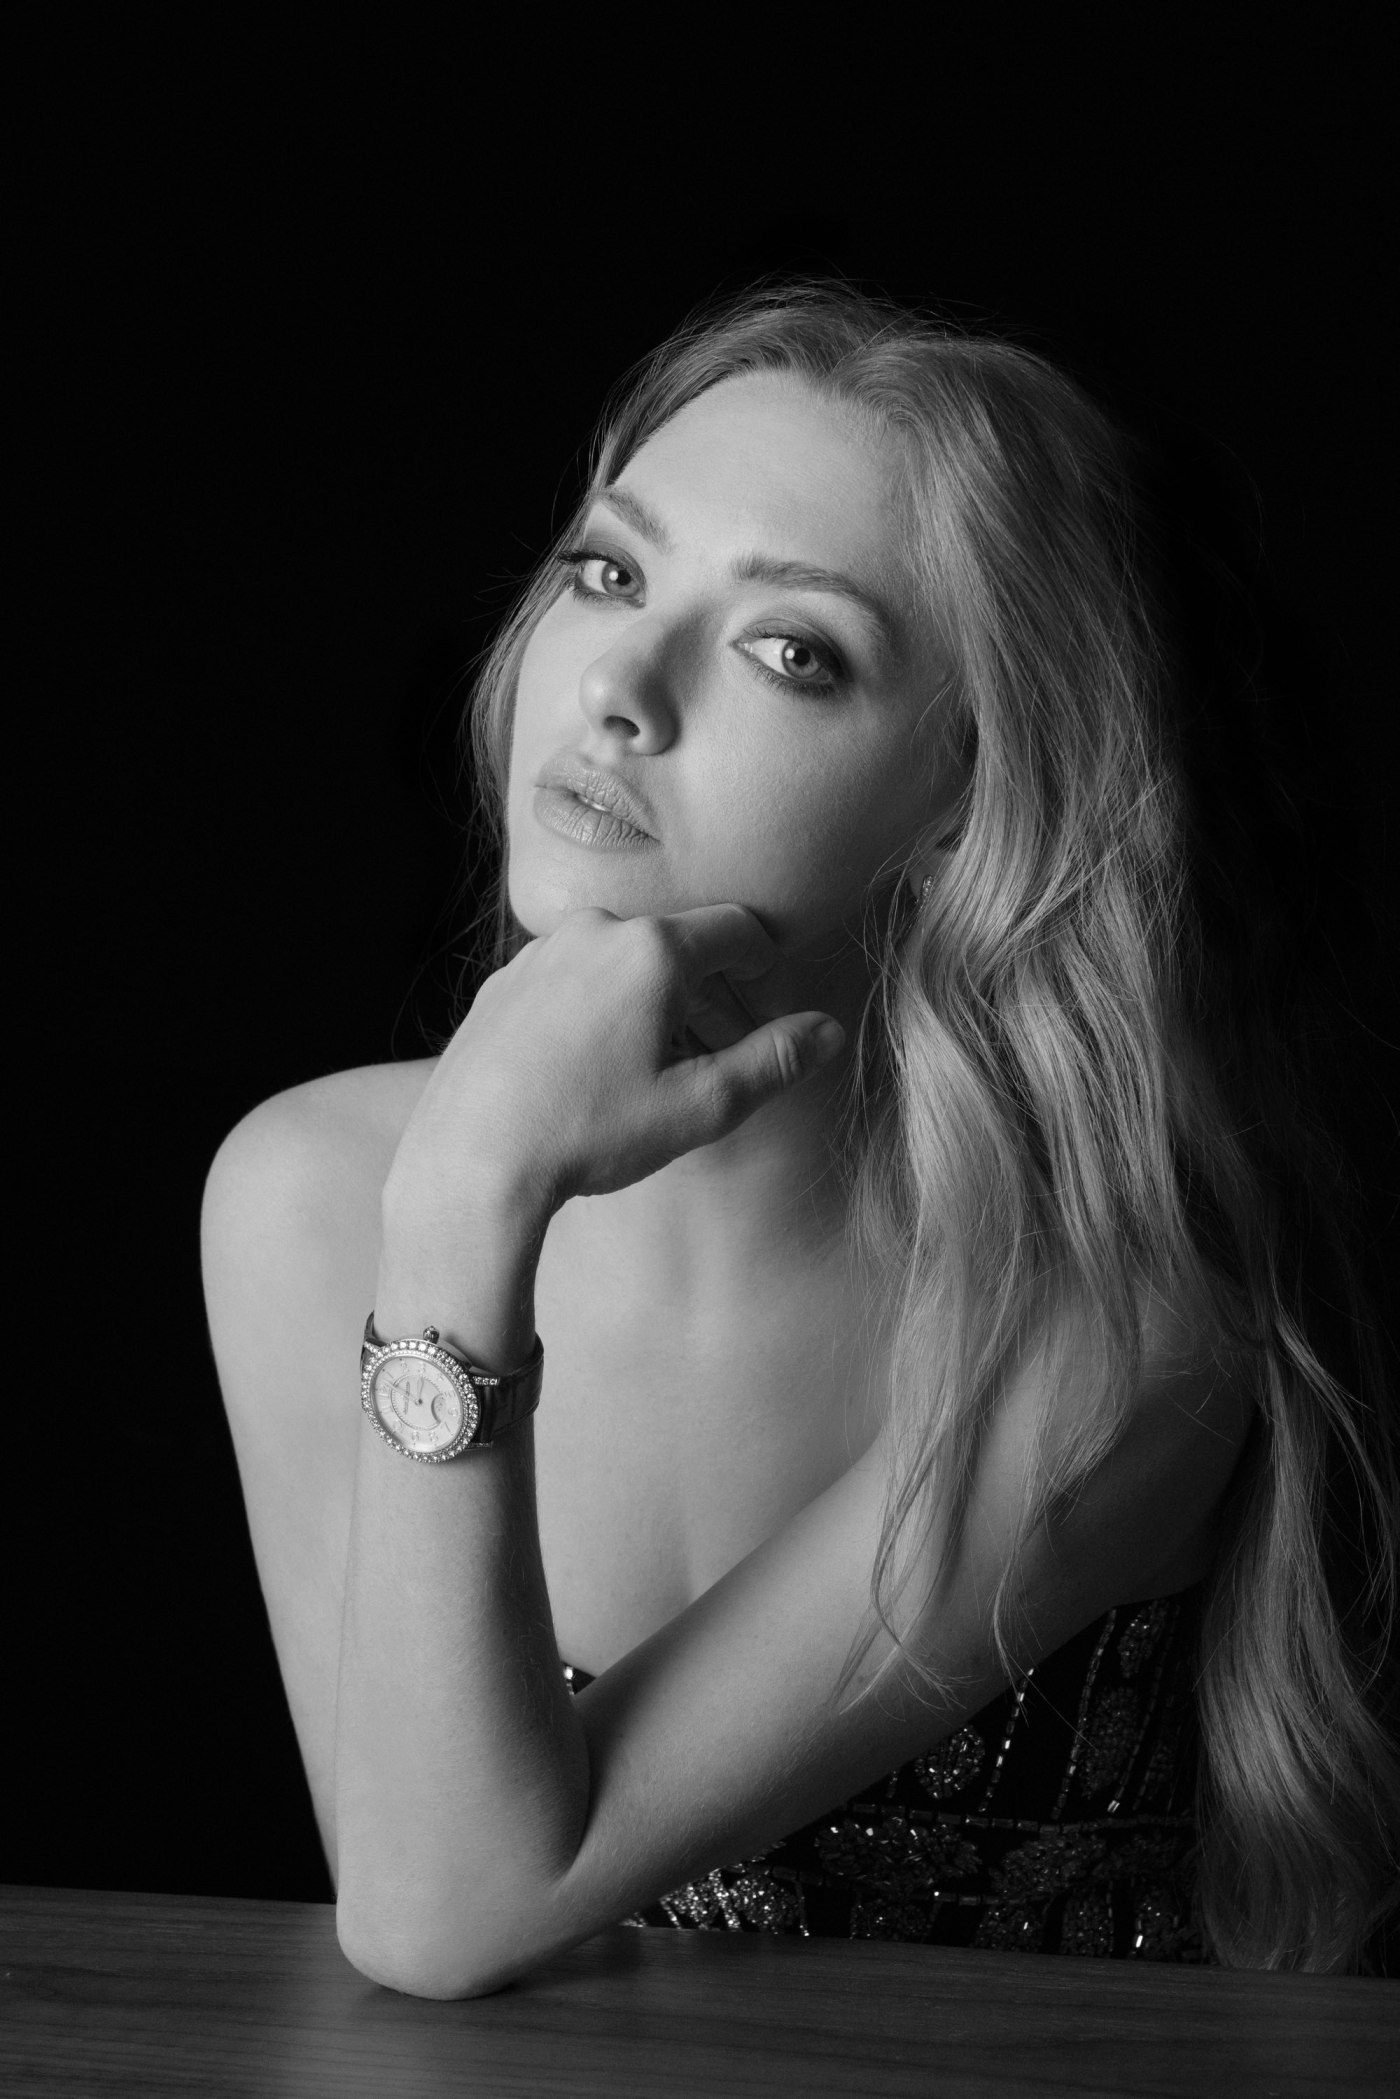 Amanda Seyfried and the Jaeger-LeCoultre Dazzling Rendez-Vous